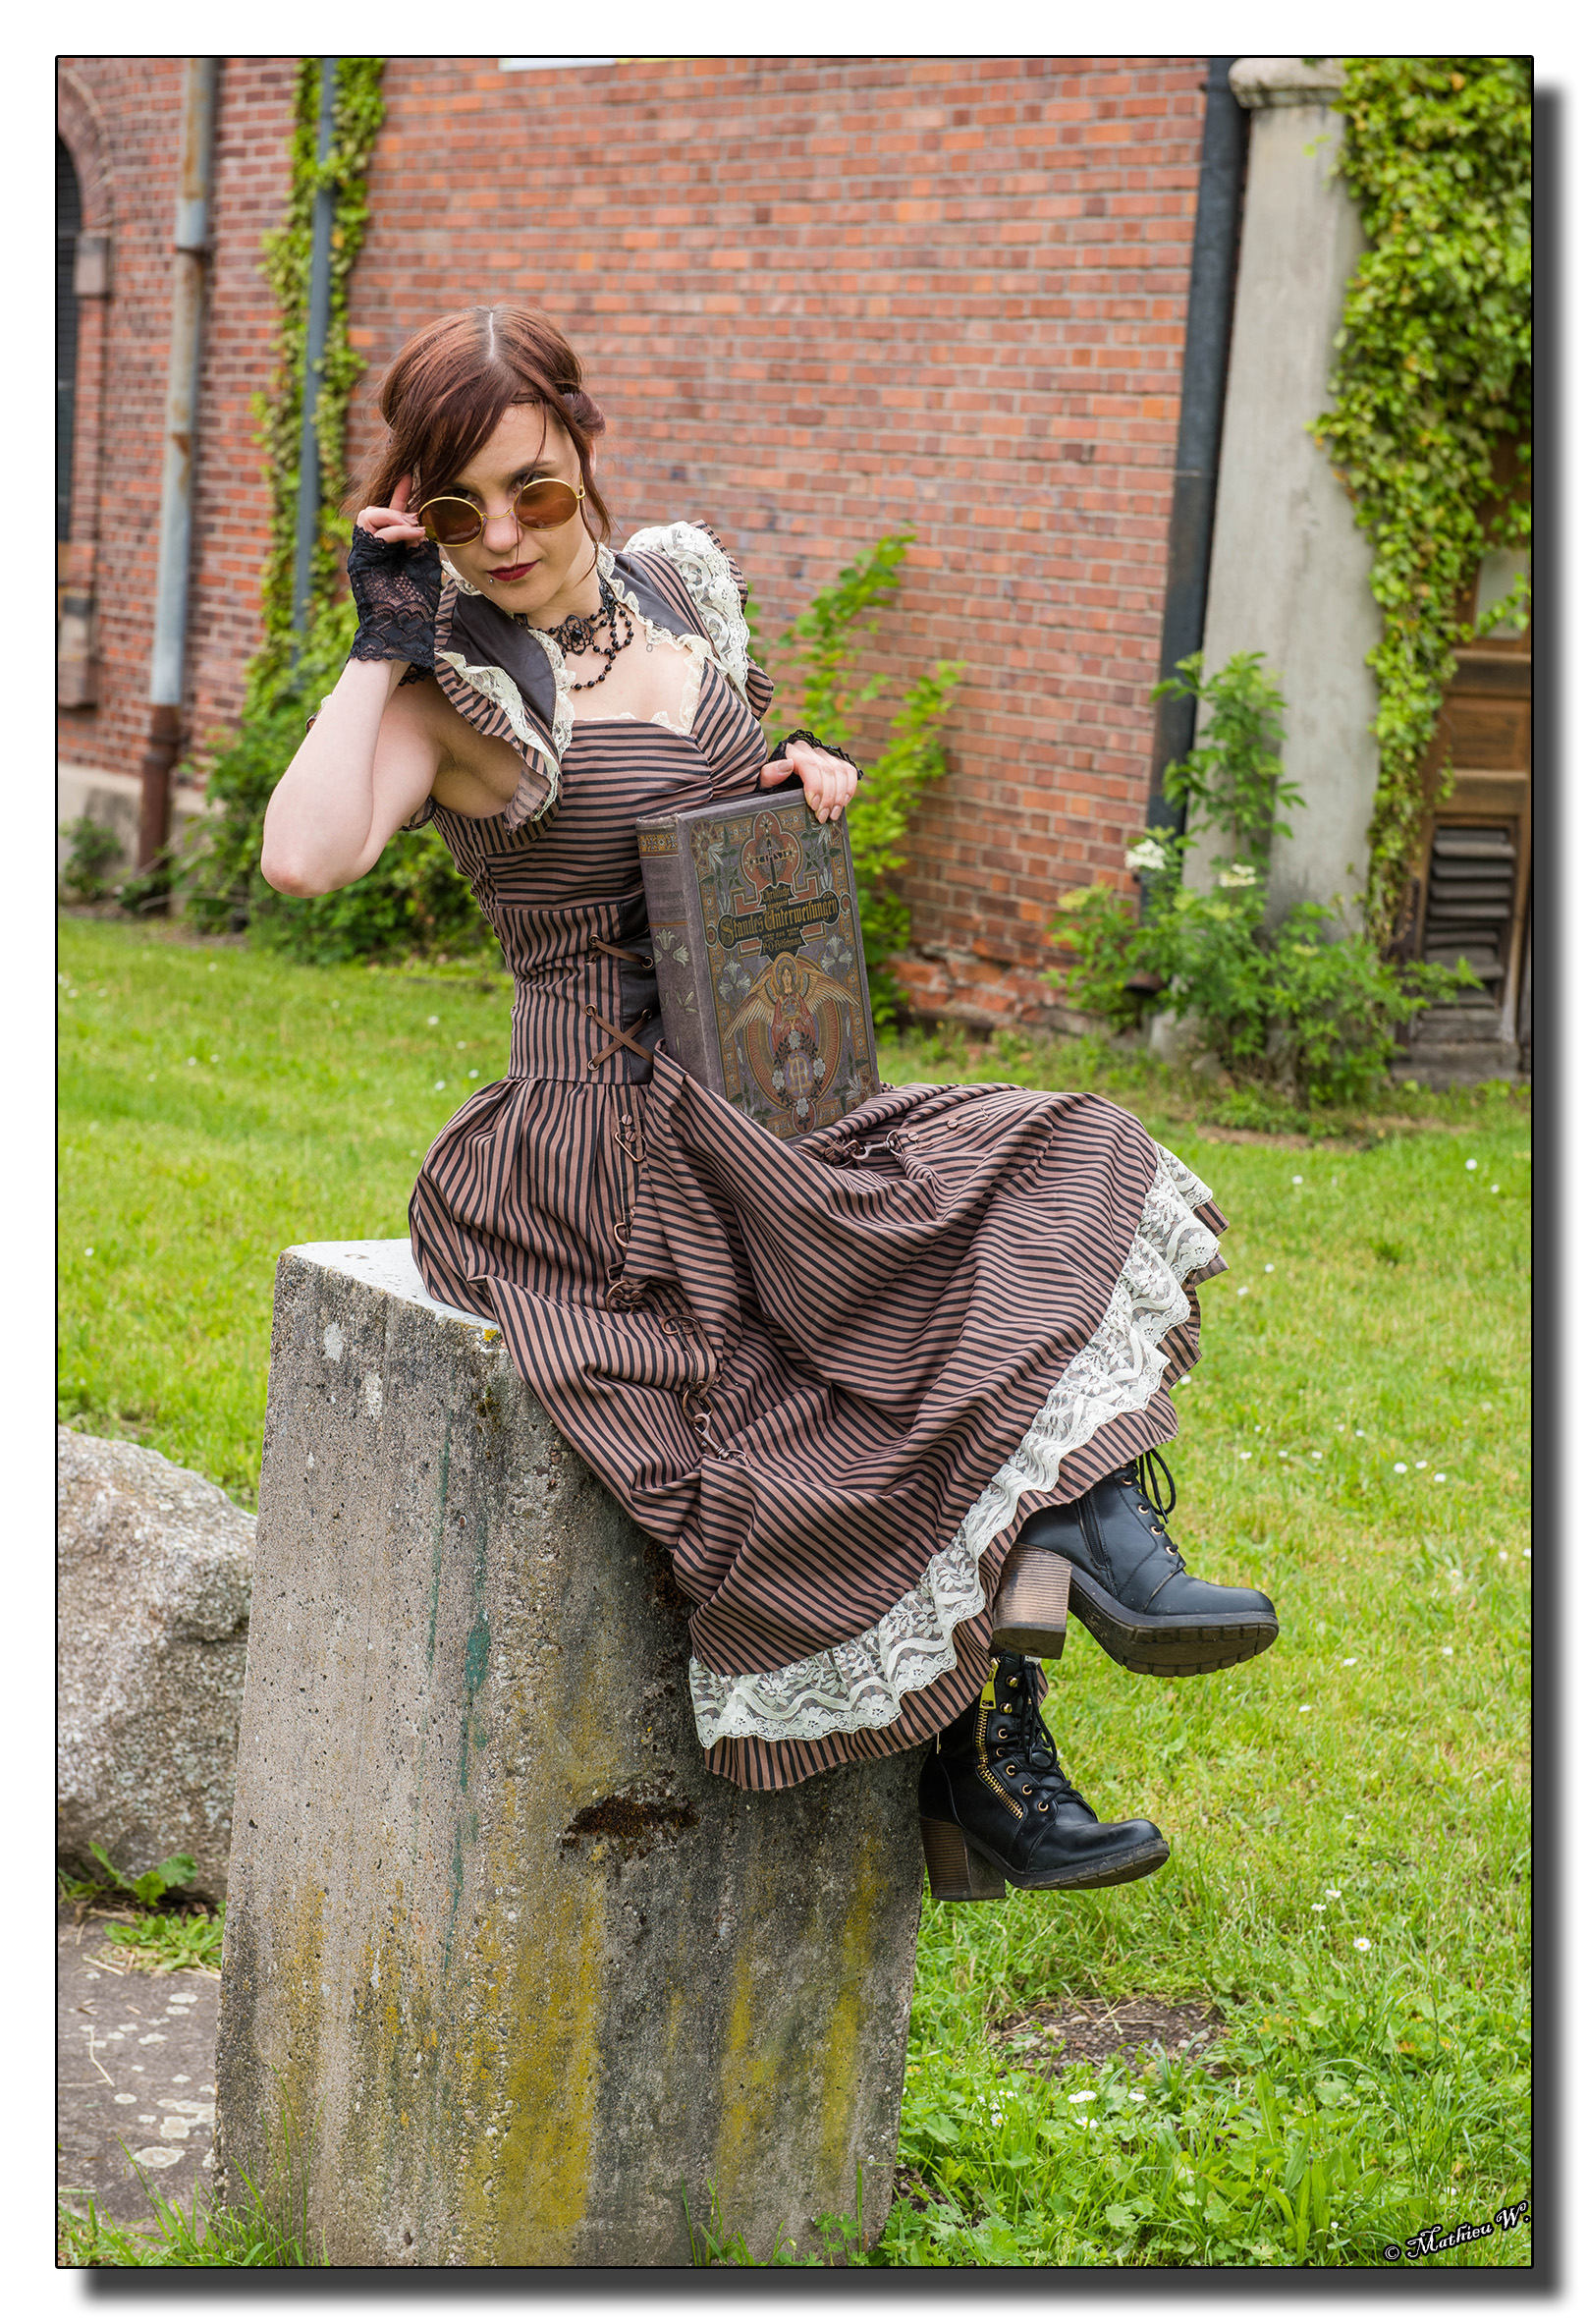 2016-05-29 Cosplay Wesserling (292)